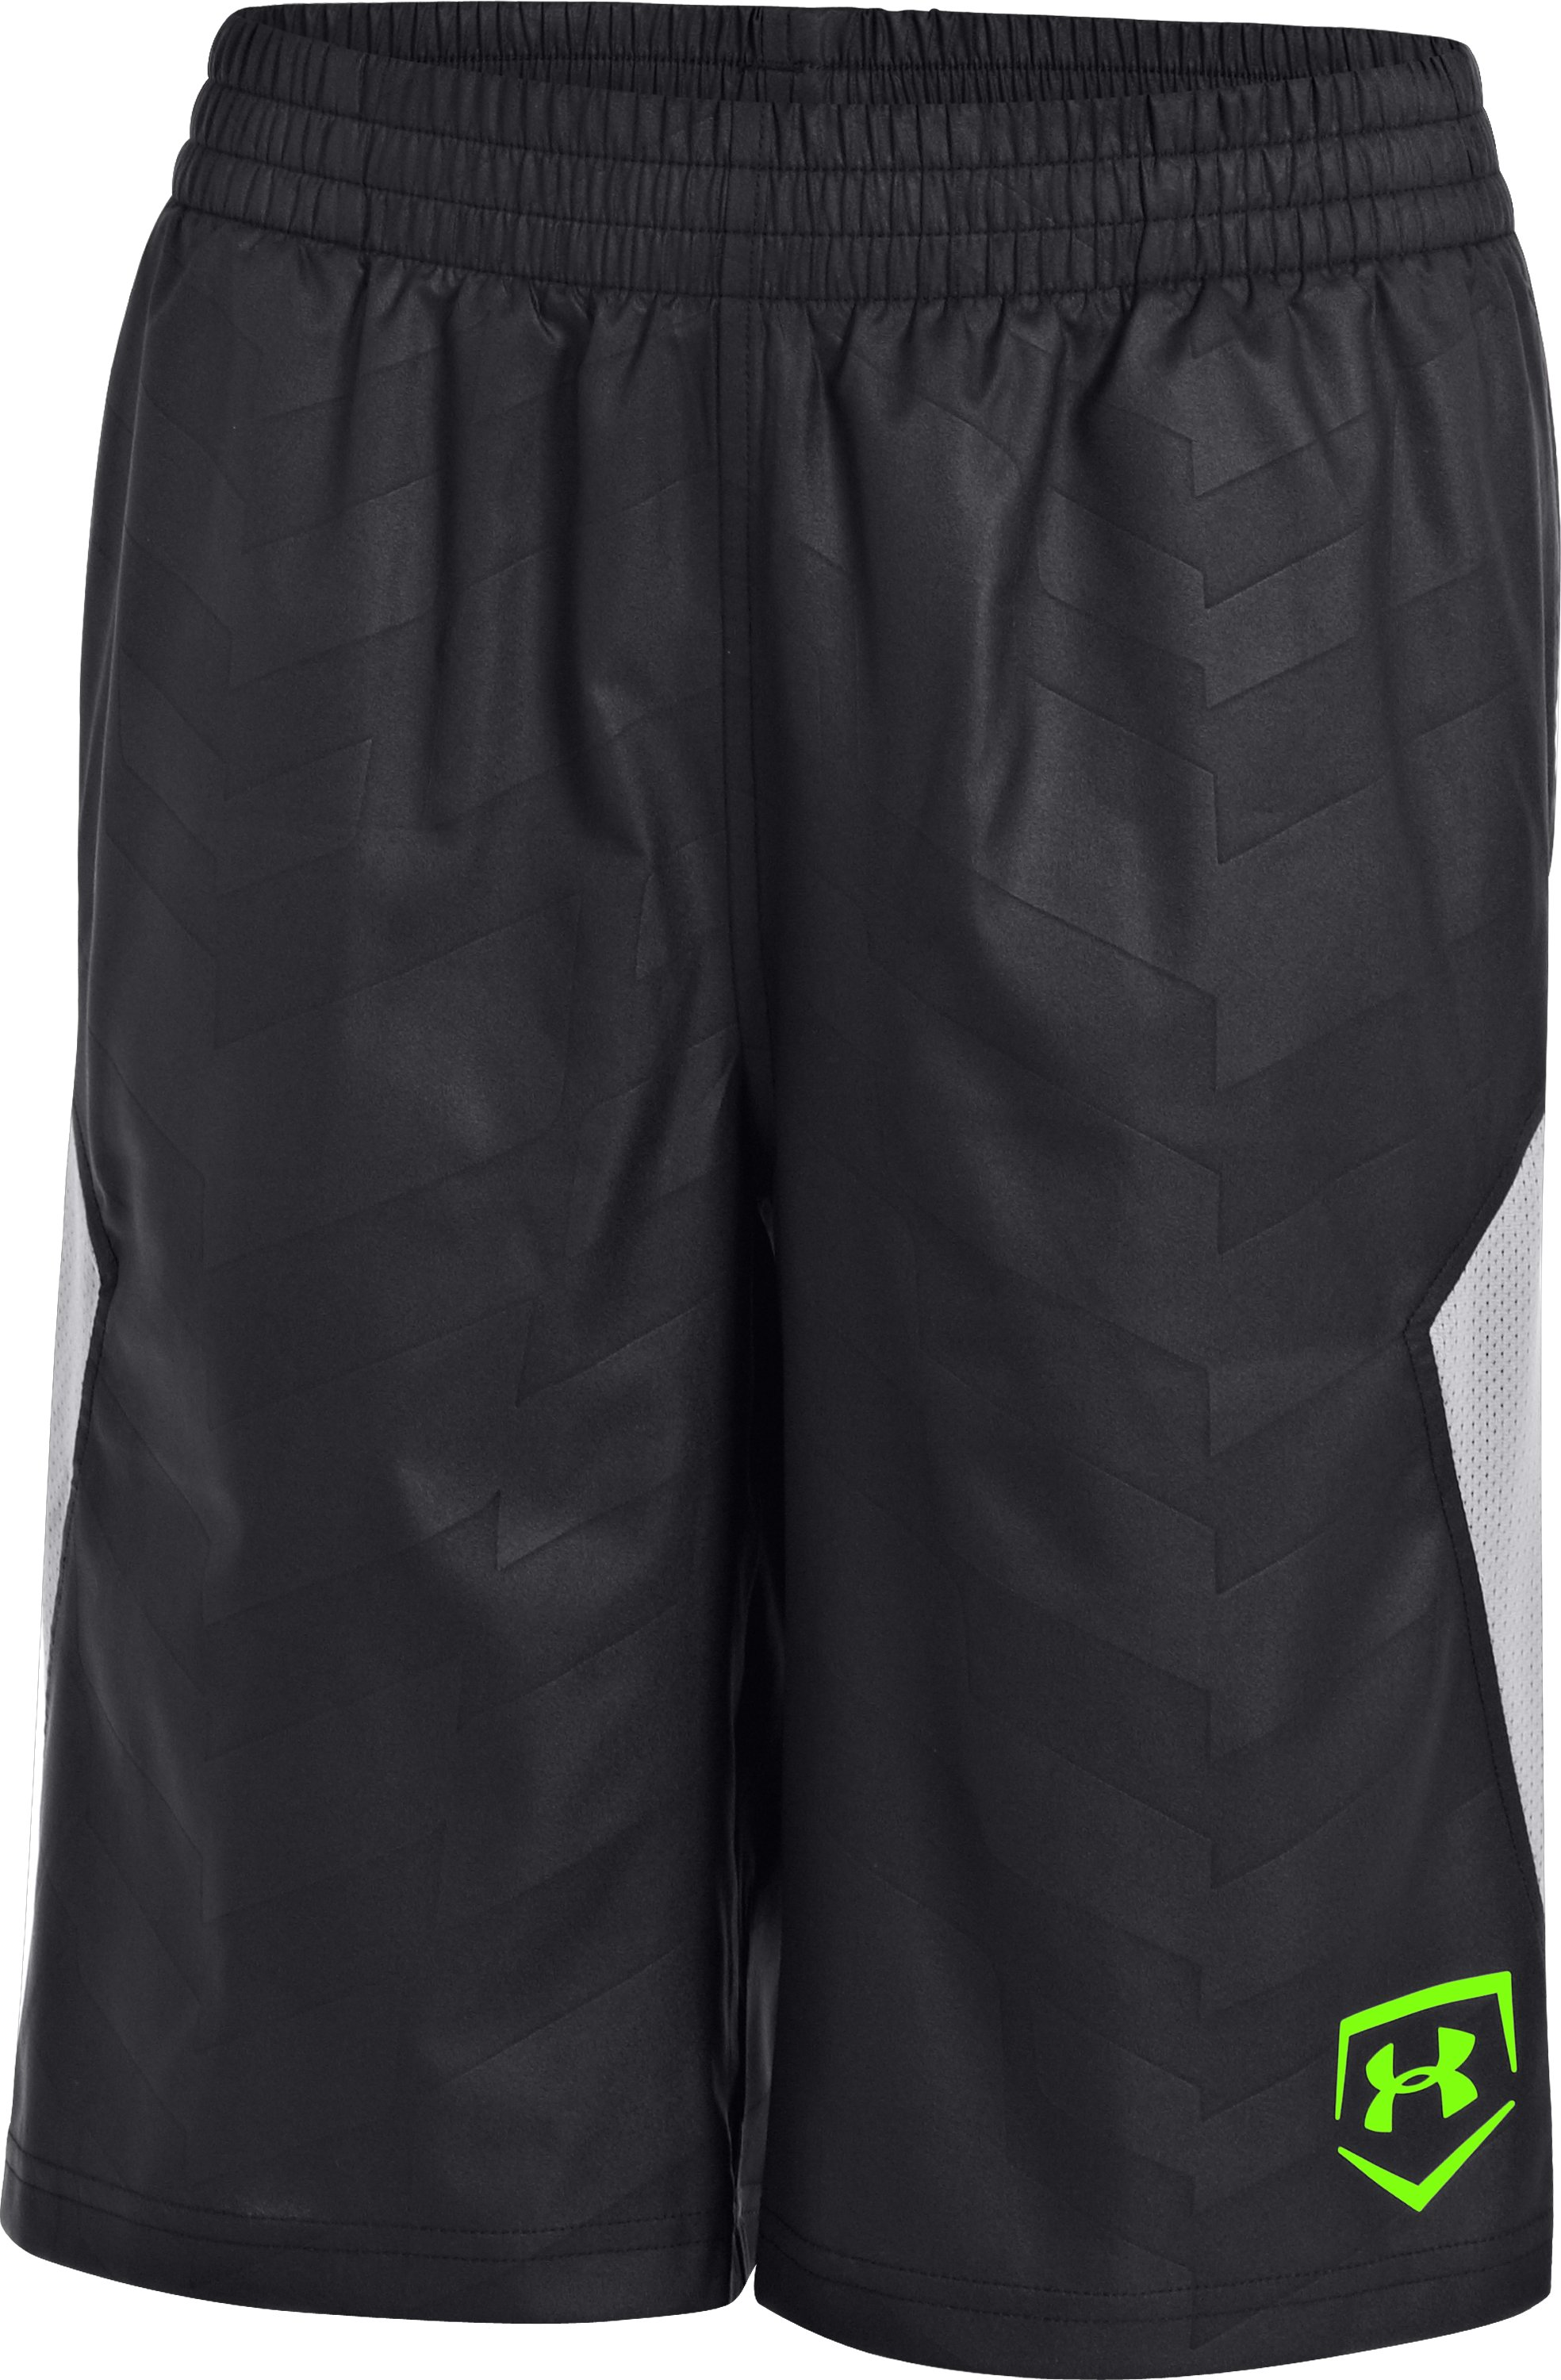 Boys' UA CTG Baseball Training Shorts, Black , undefined